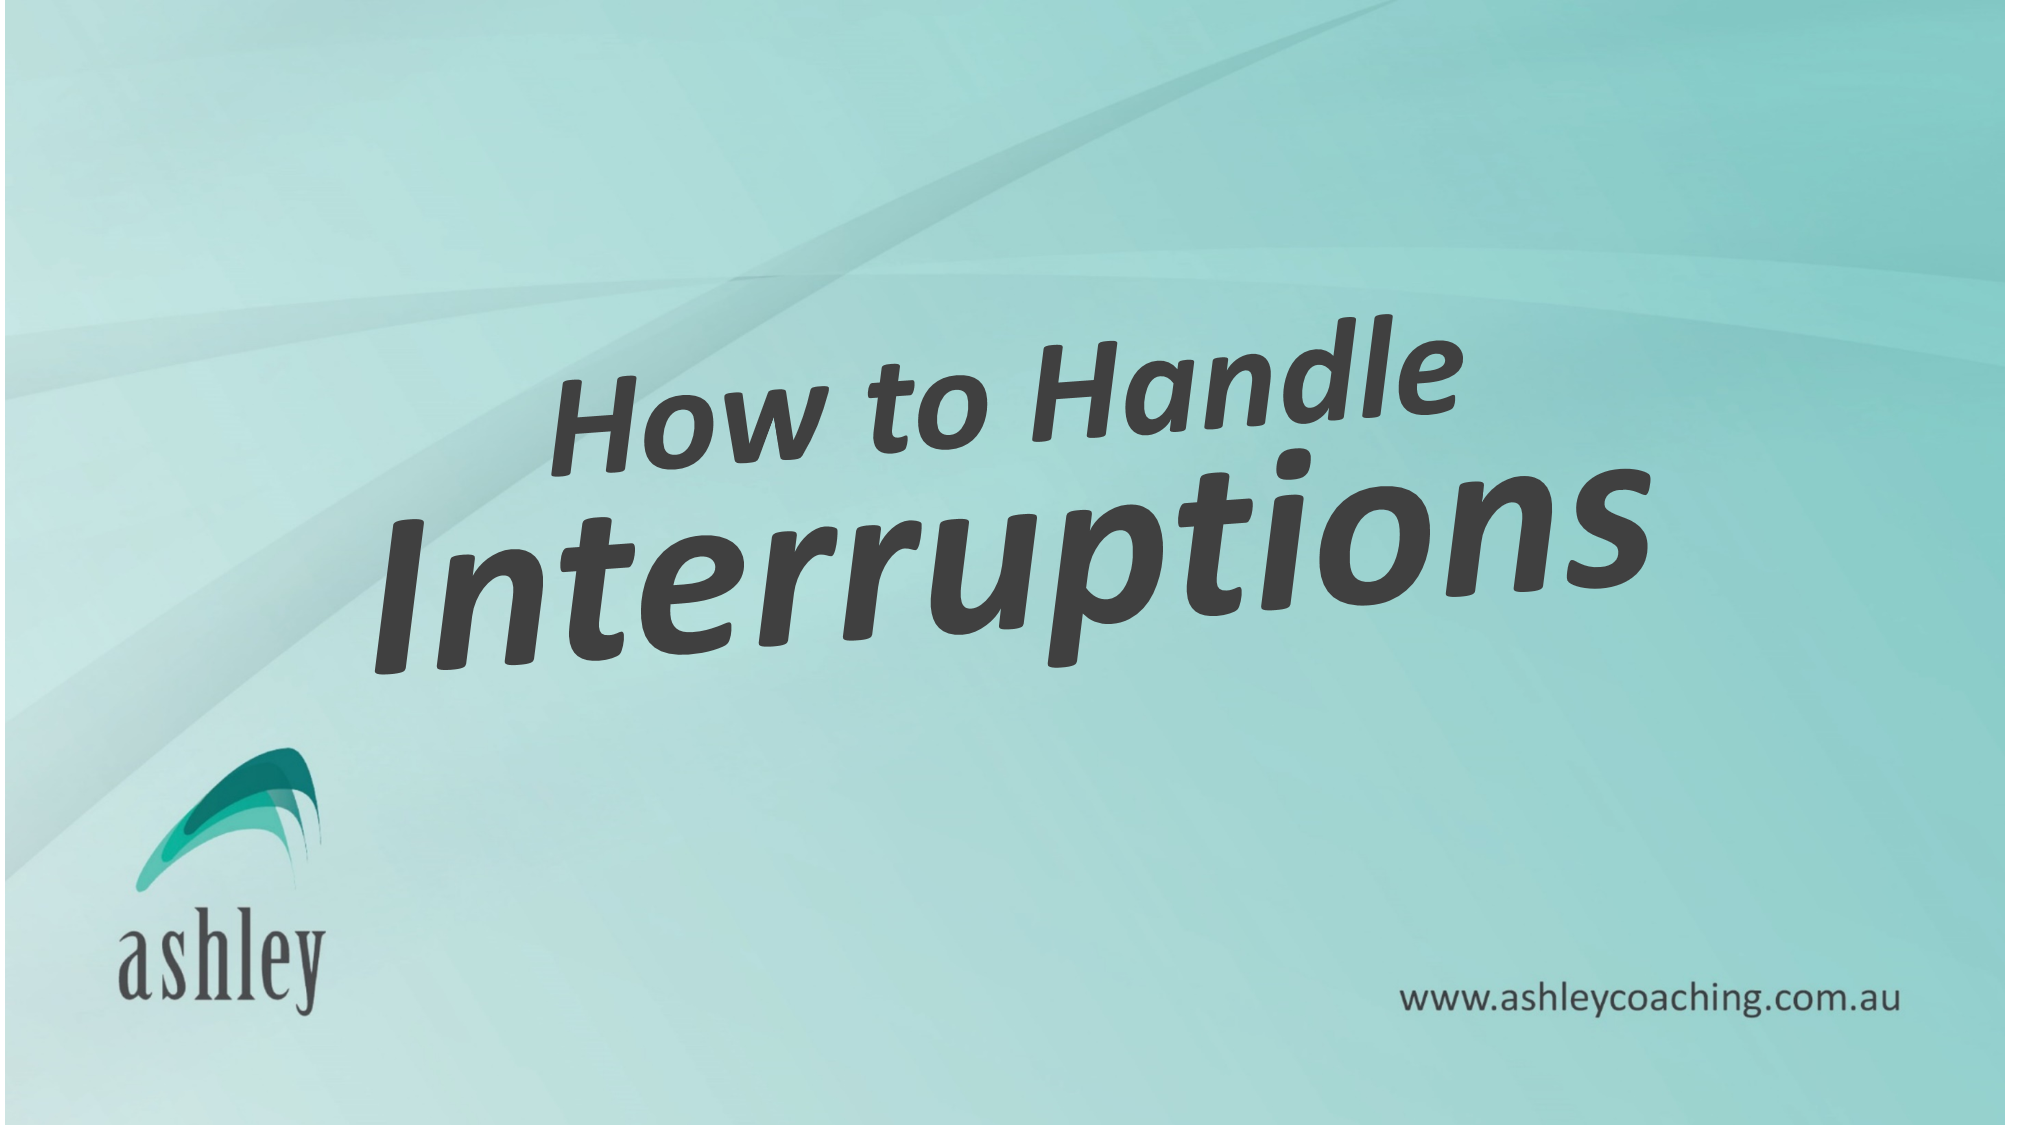 How to Handle Interruptions